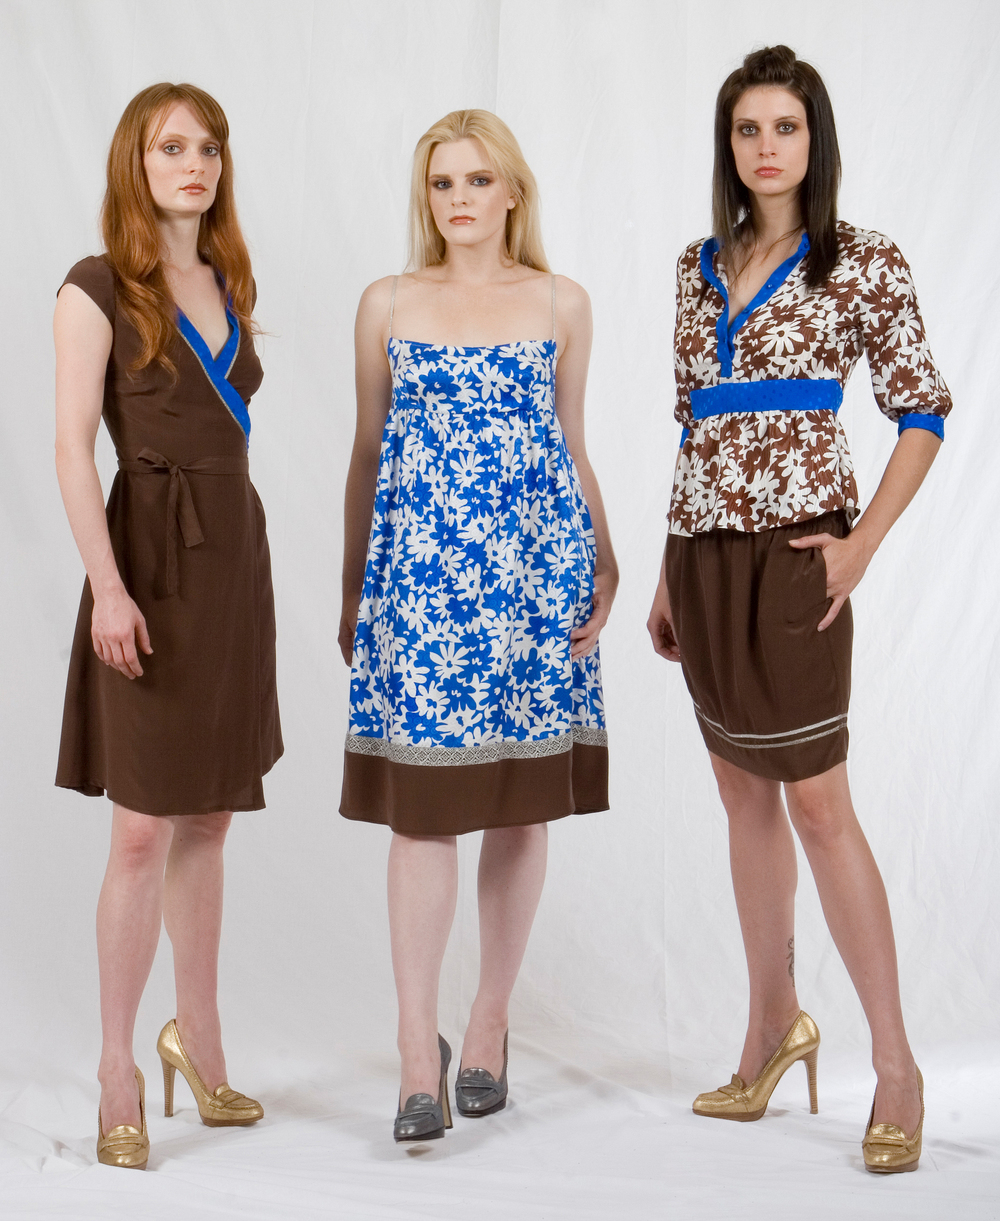 Wrap Dress in Silk  Crepe 7 Dotted Jaquard w/ Metallic Lace Trim  Cami Dress in Printed Silk Jaquard & Crepe w/ Metallic Lace Trim.  Tunic Shirt in Printed & Dotted Silk jaquard & Crepe-de-chine w/ Metallic Trim  Pull-on Skirt in Silk Crepe-de-chine w/ Metallic Trim / Metallic Lace Trim.